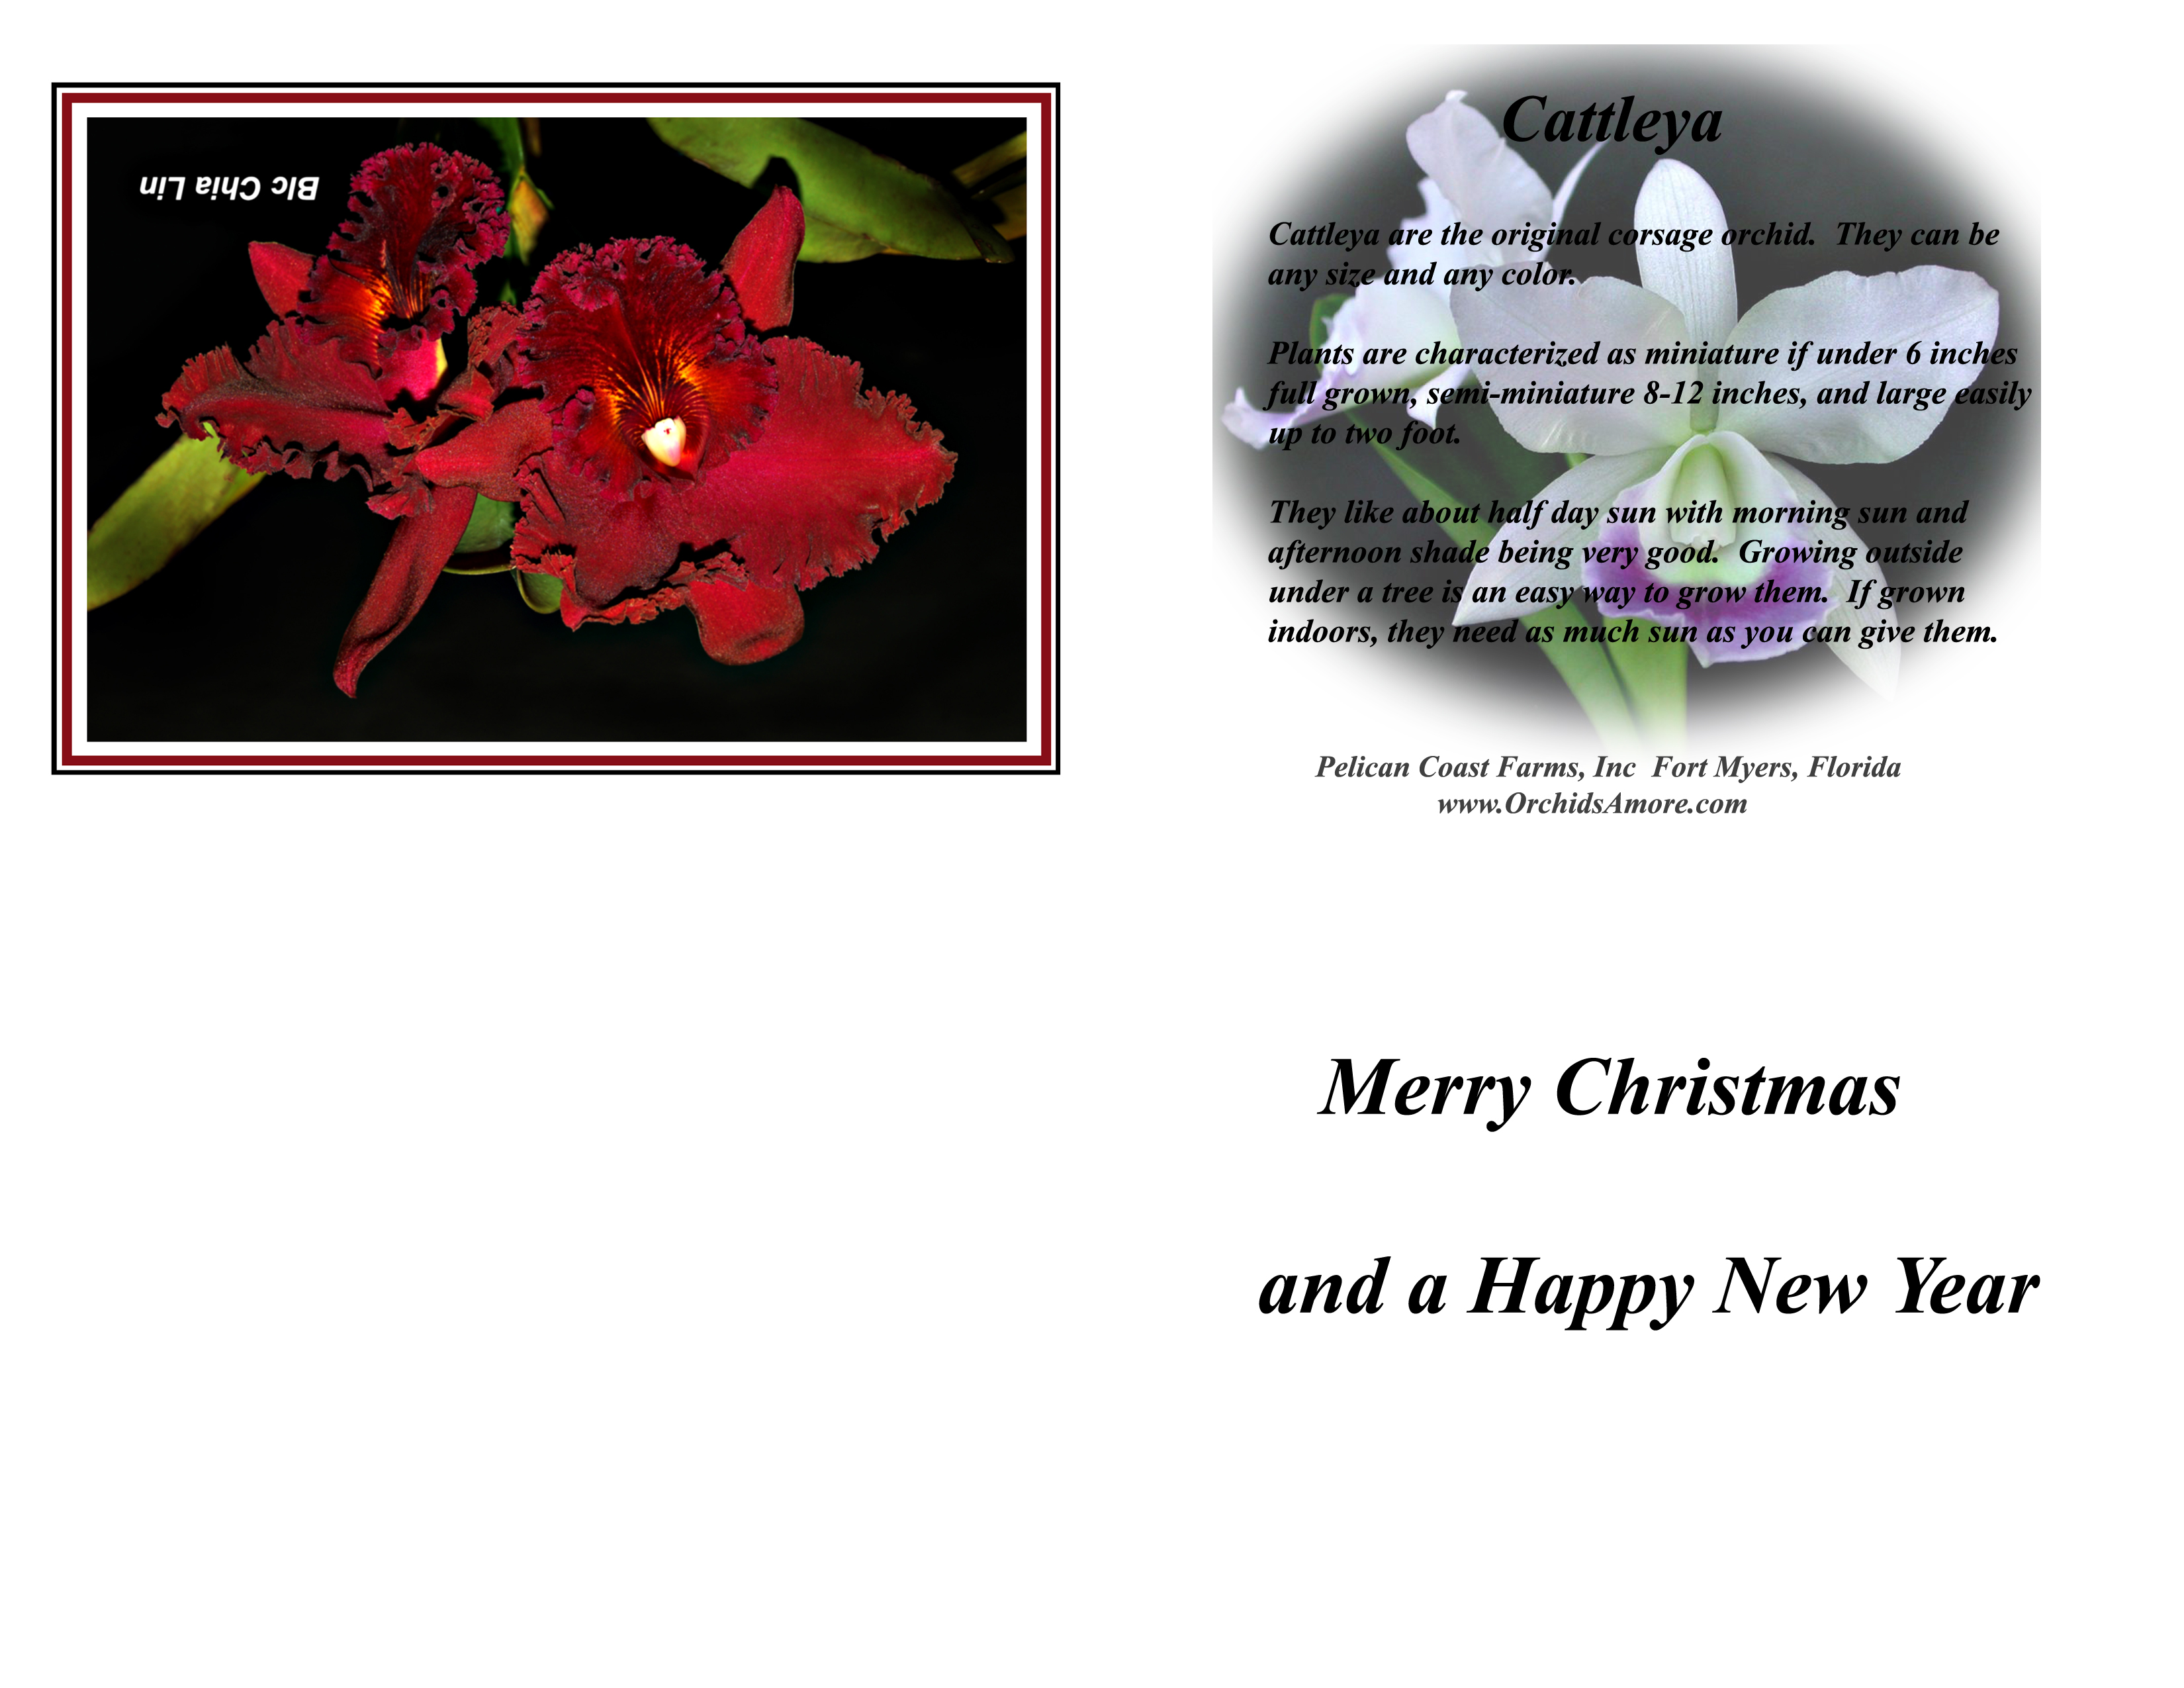 Free Orchid Christmas Birthday And Greeting Cards